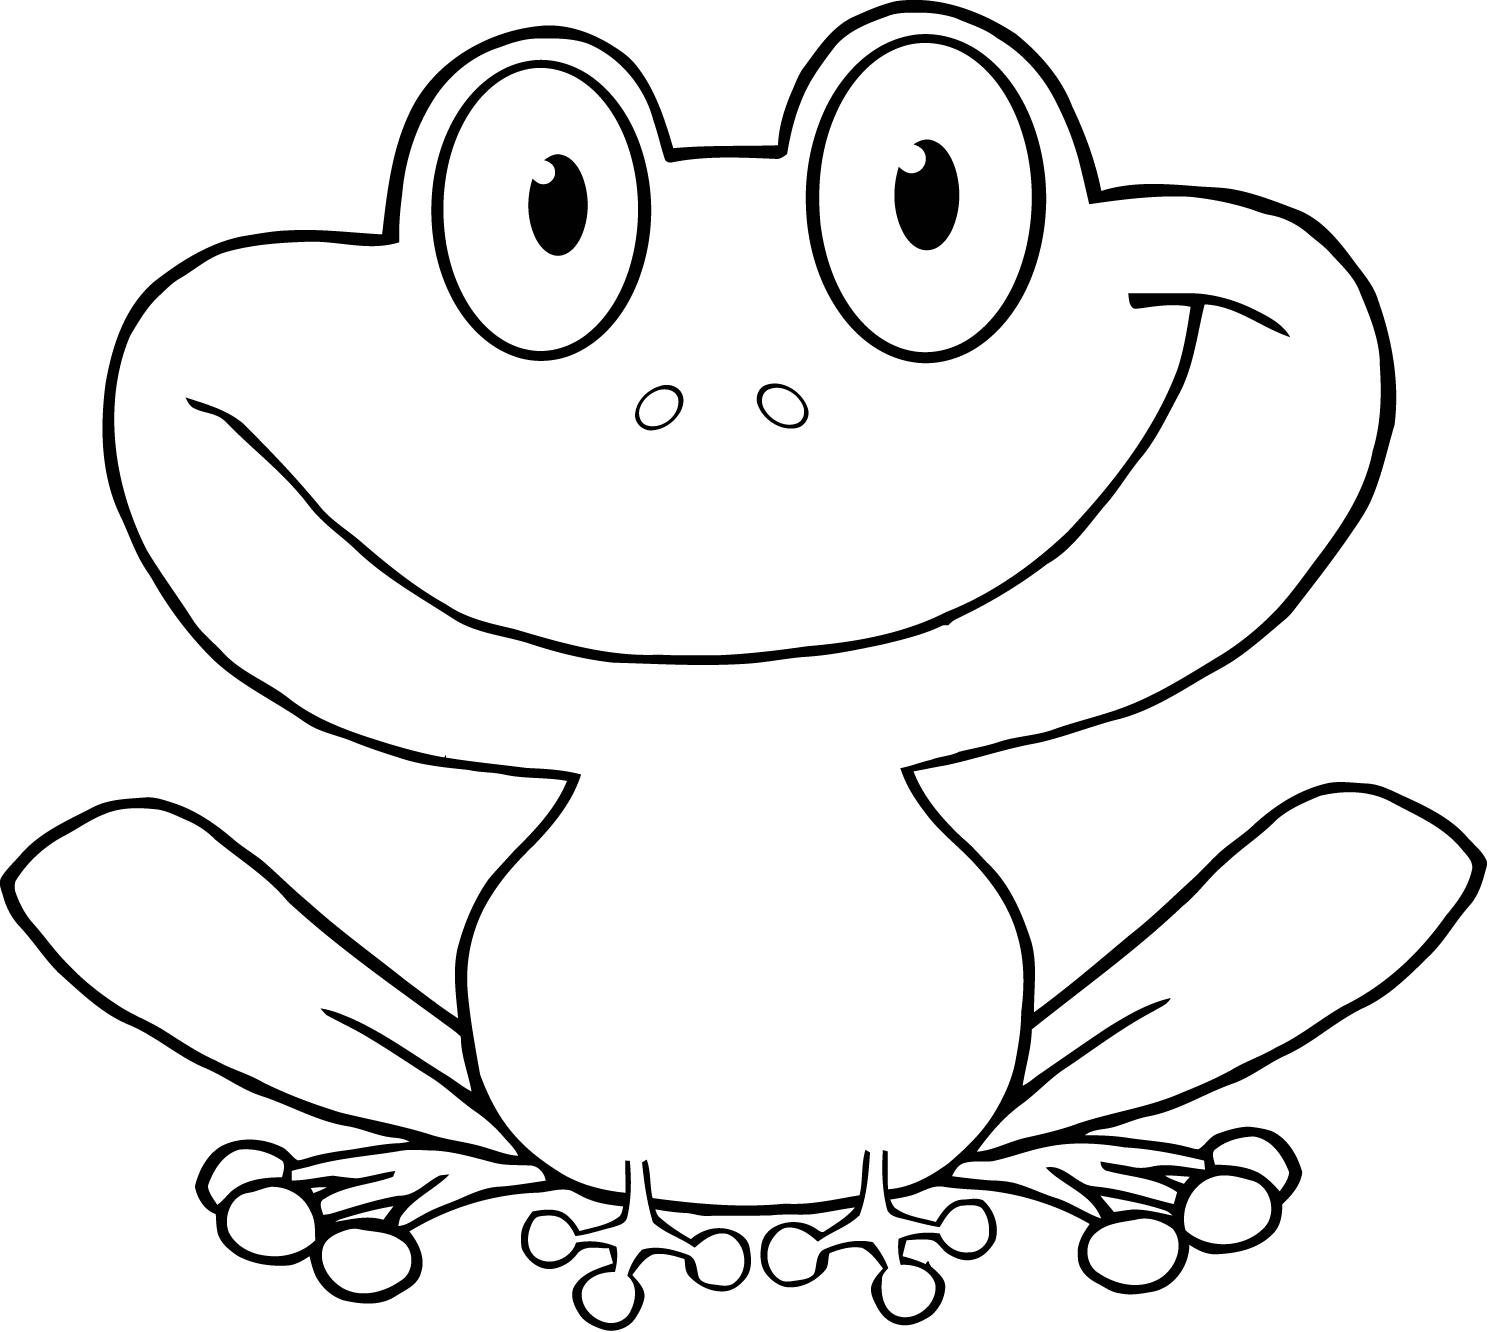 1488x1332 Picturesque Design Ideas Coloring Pages Draw Pictures A Simple